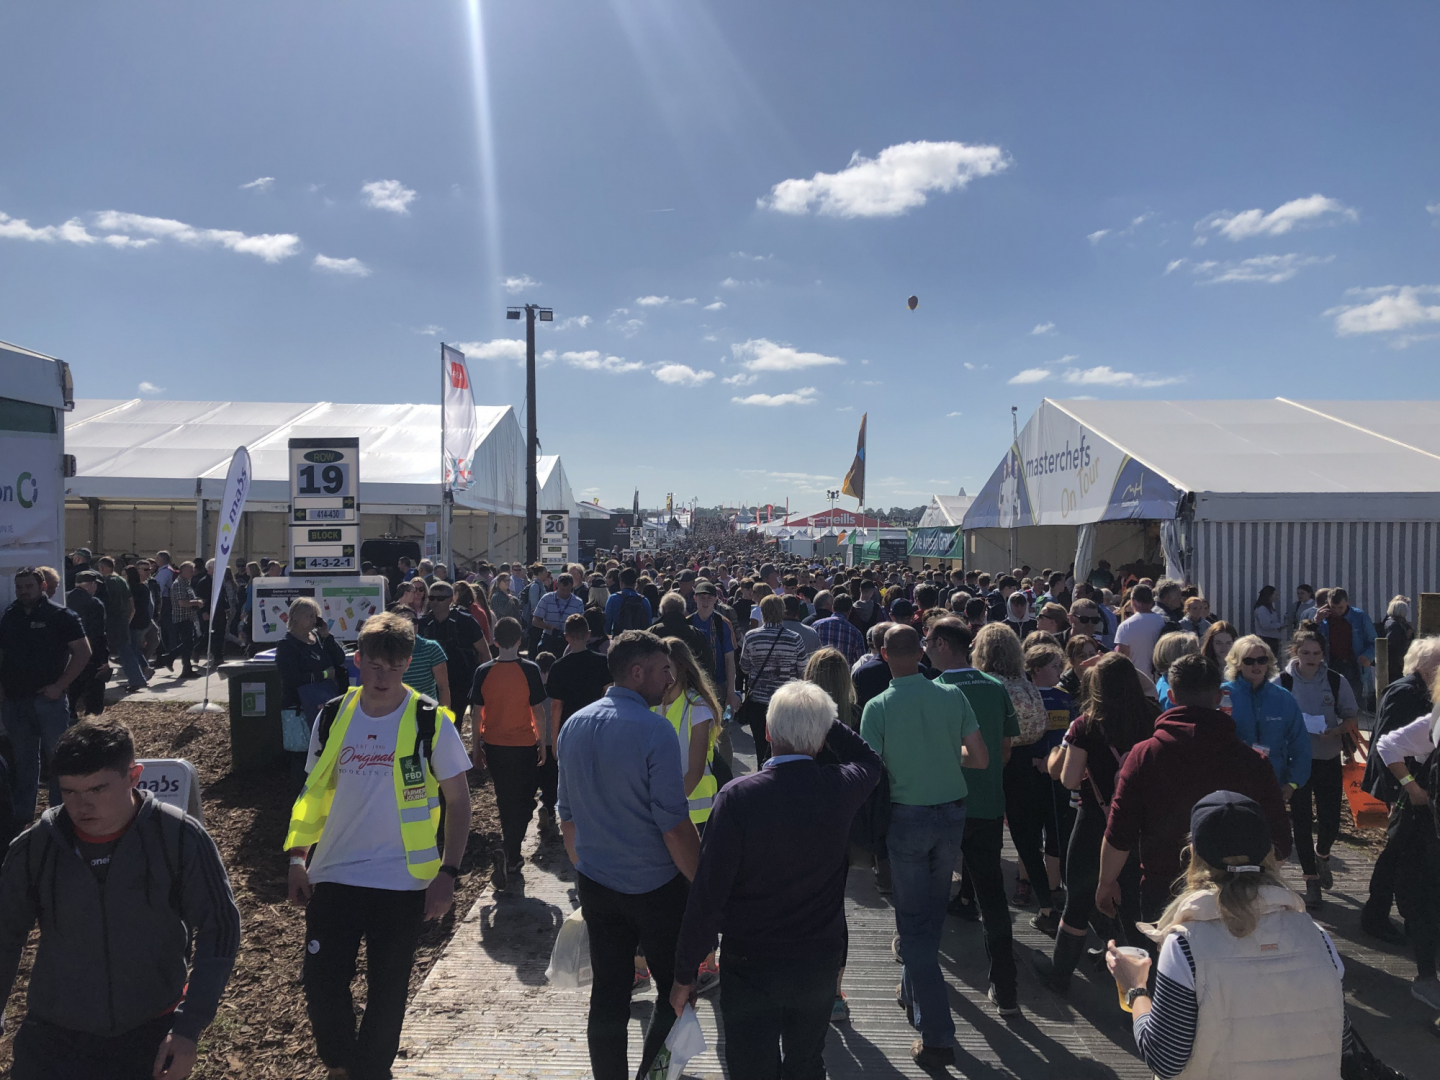 Irish National Ploughing Champs - The Connected Community